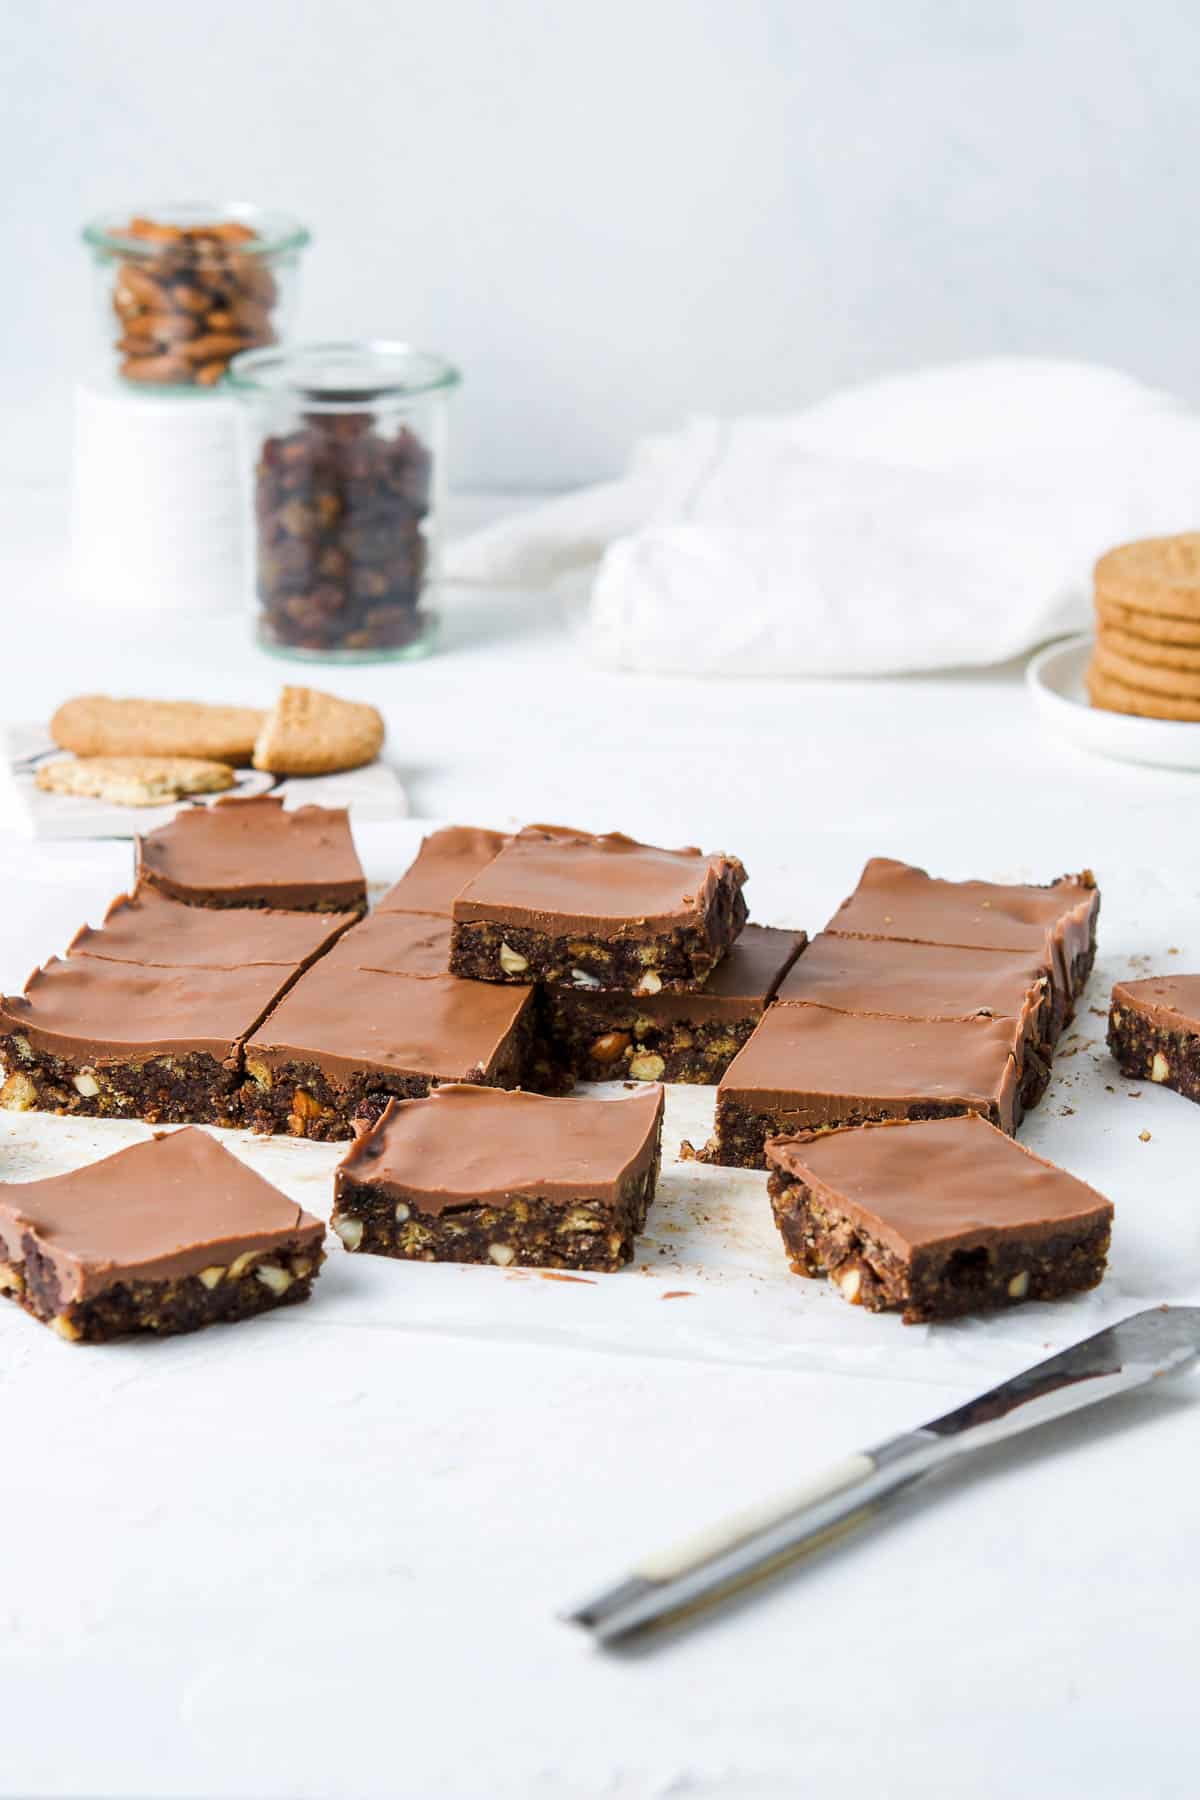 slices of chocolate tiffin on a white bench, with some biscuits in the background.